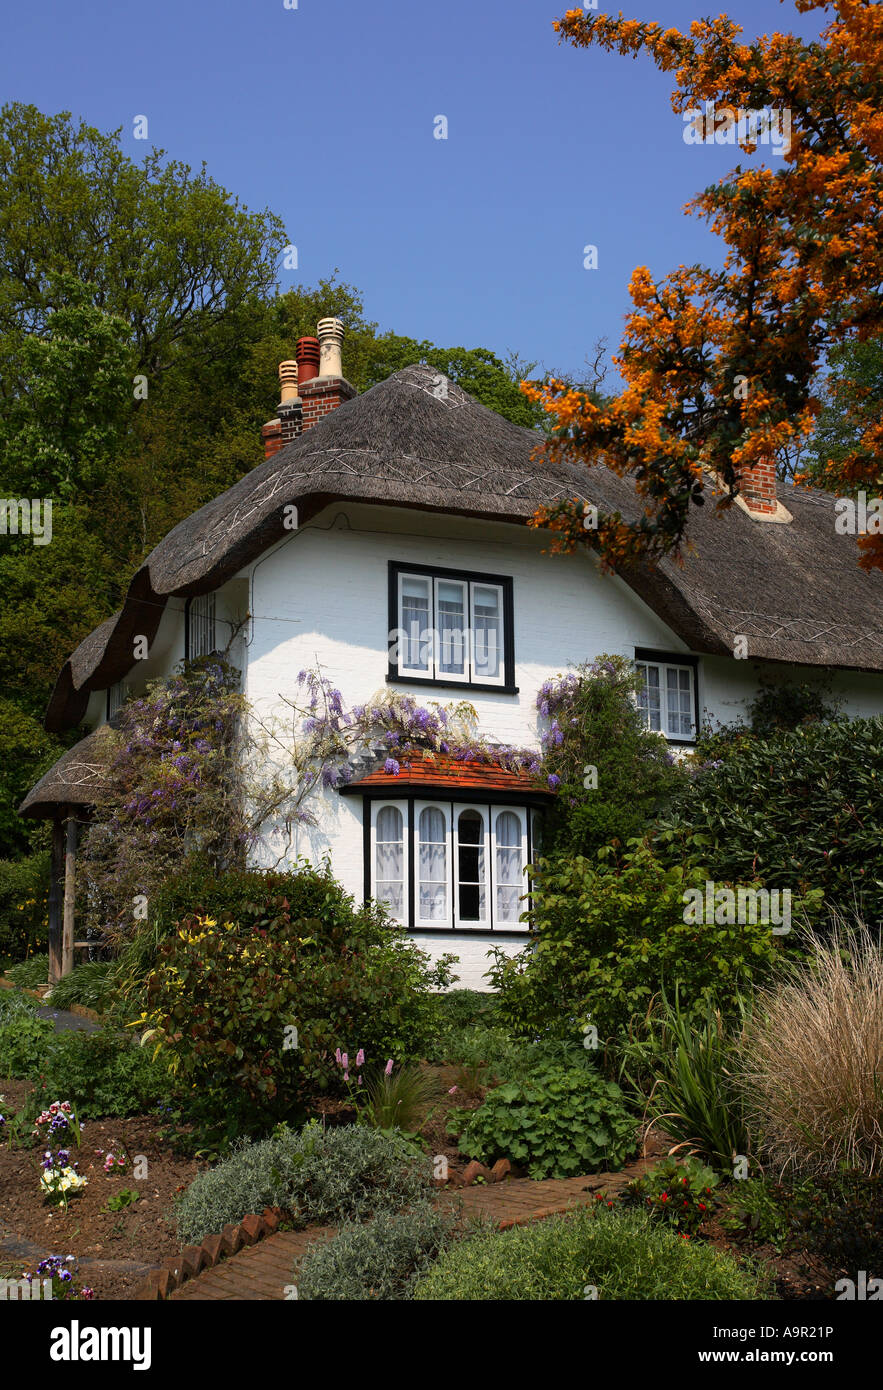 Beehive Cottage, New Forest, Hampshire, England - Stock Image